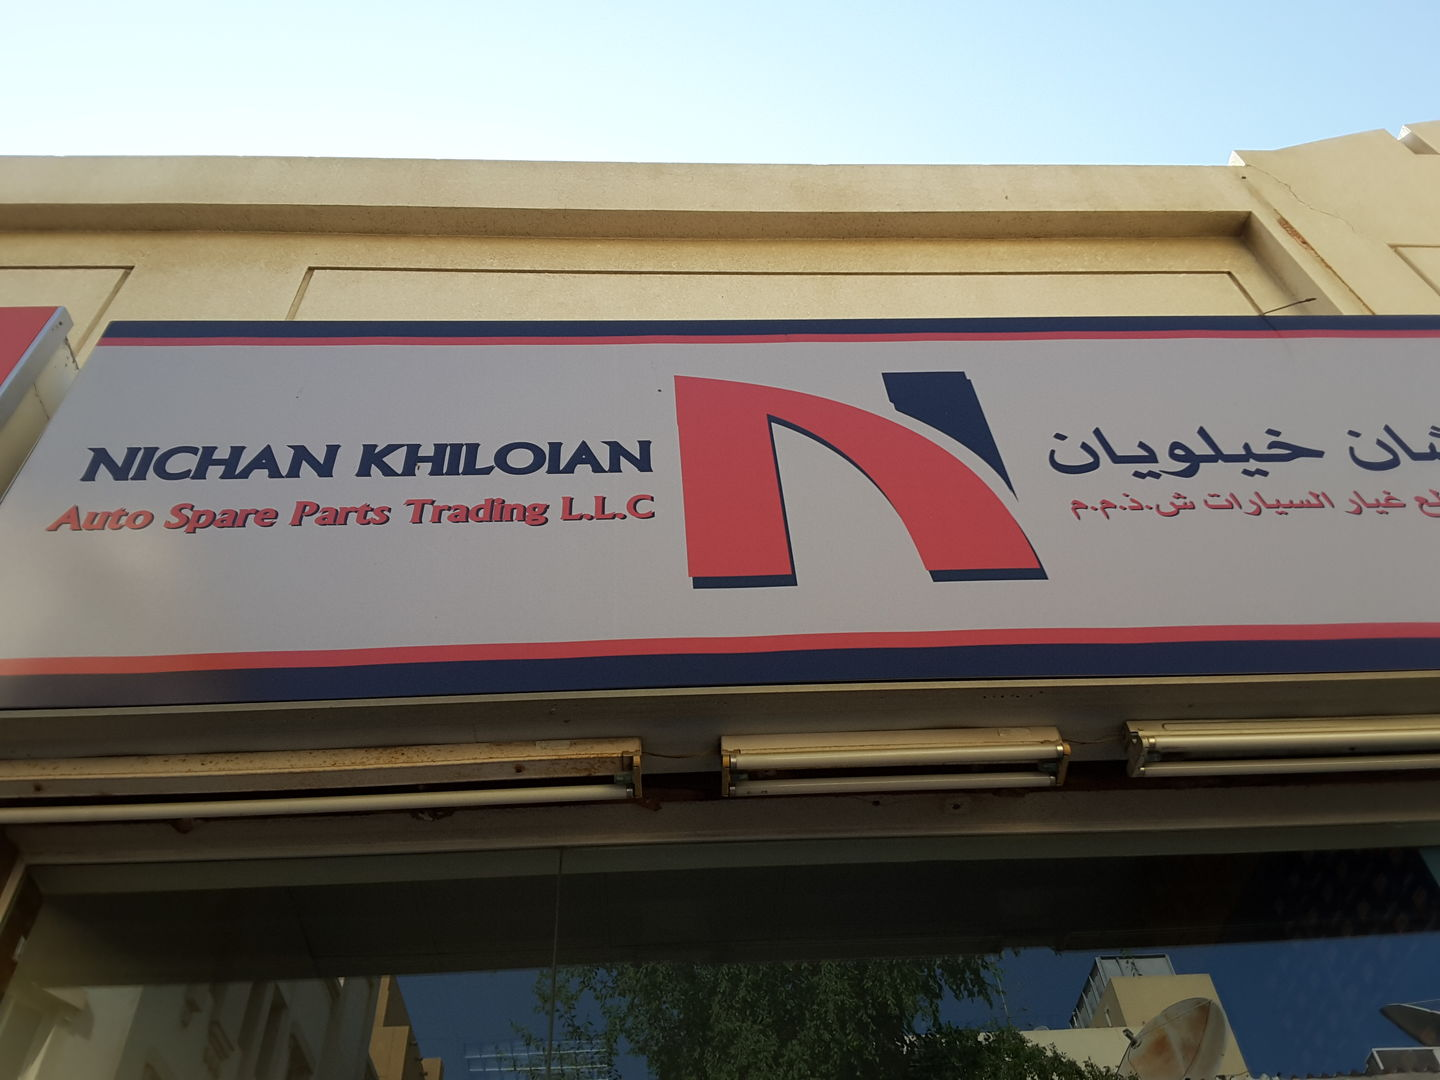 HiDubai-business-nichan-khiloian-auto-spare-parts-trading-b2b-services-distributors-wholesalers-naif-dubai-2